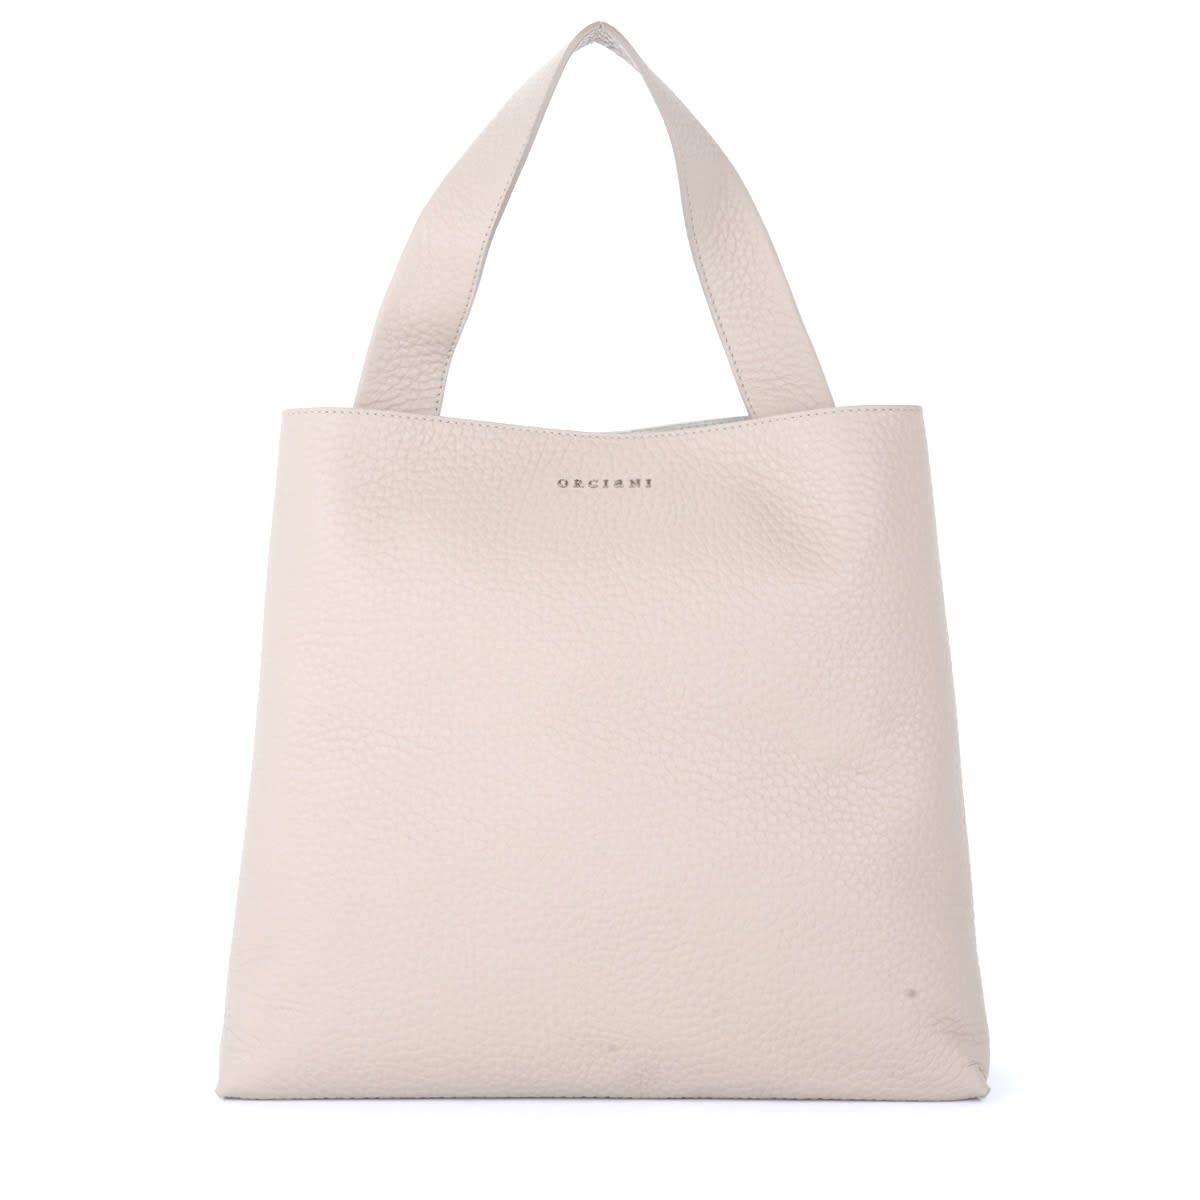 Orciani Jackie Shoulder Bag In Dove Gray Grained Leather